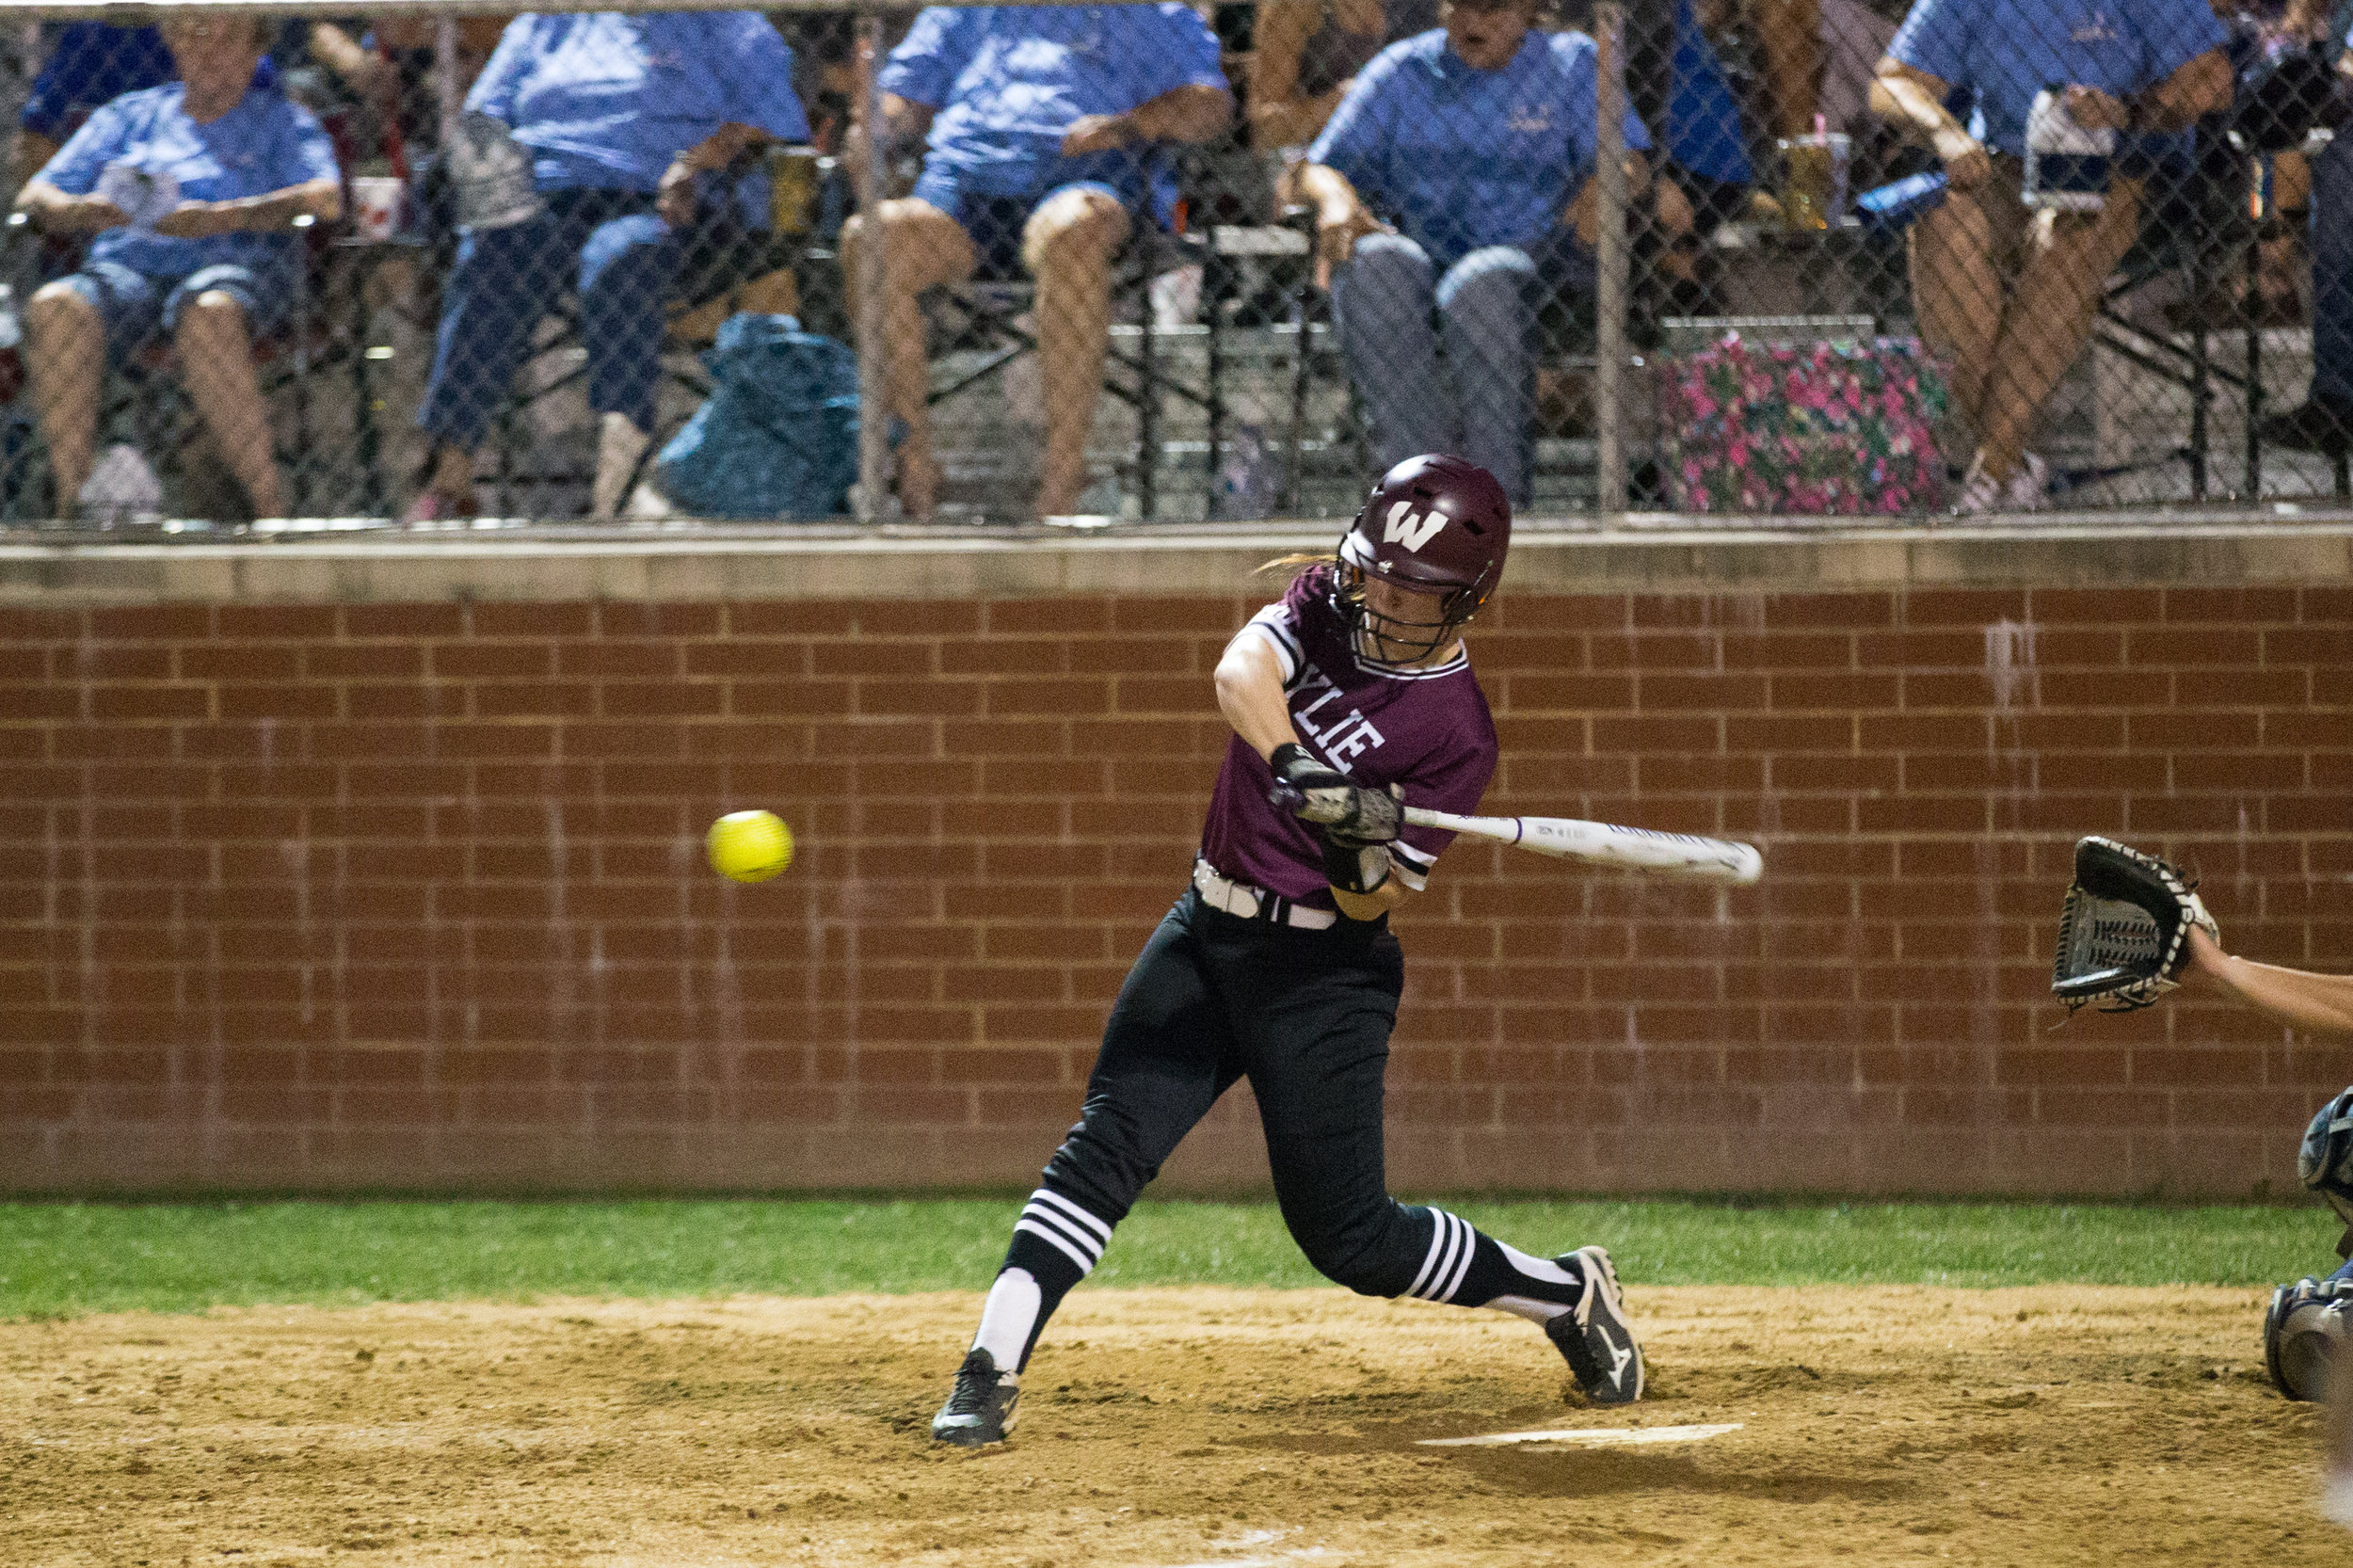 5_18 Wylie Softball-179.jpg